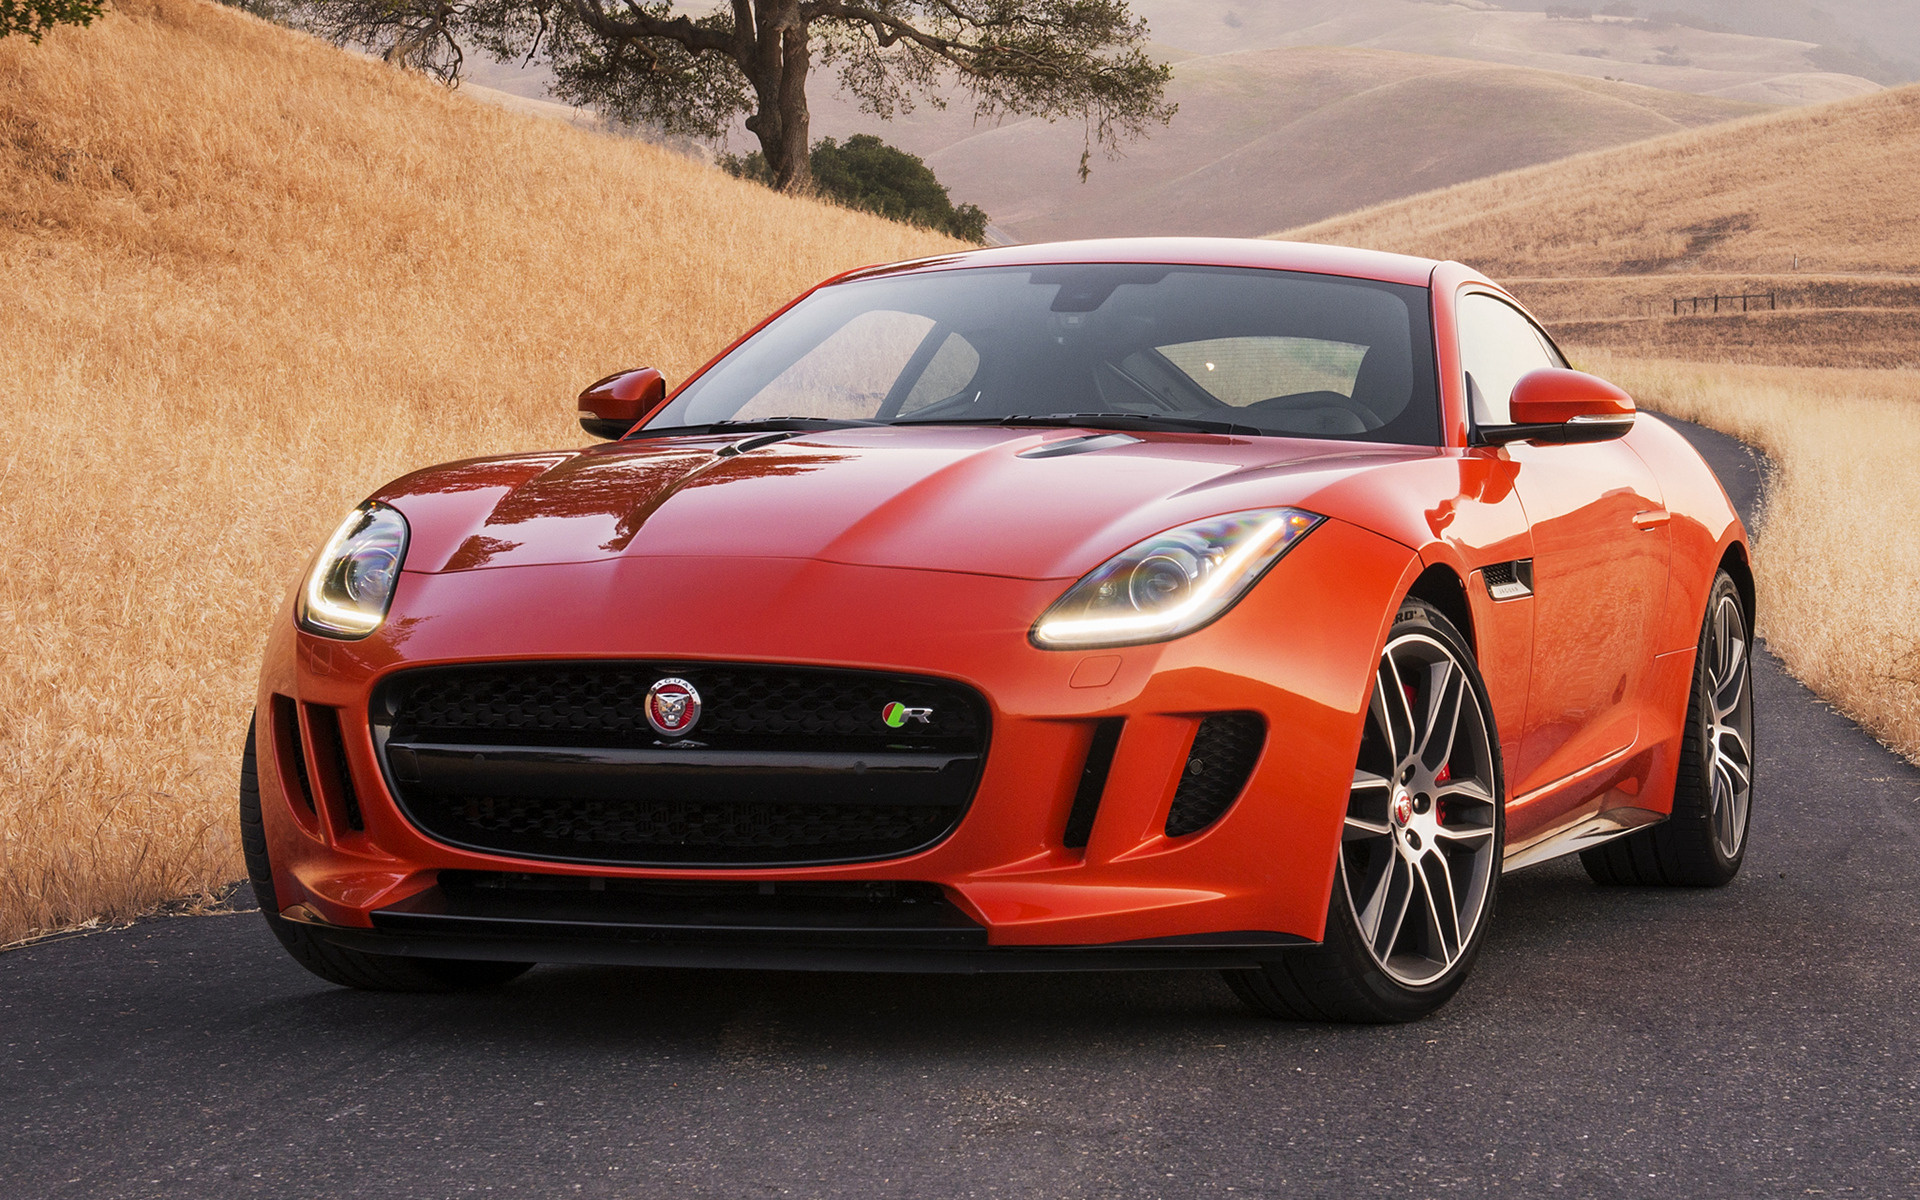 F Type Coupe >> 2015 Jaguar F-Type R Coupe (US) - Wallpapers and HD Images ...